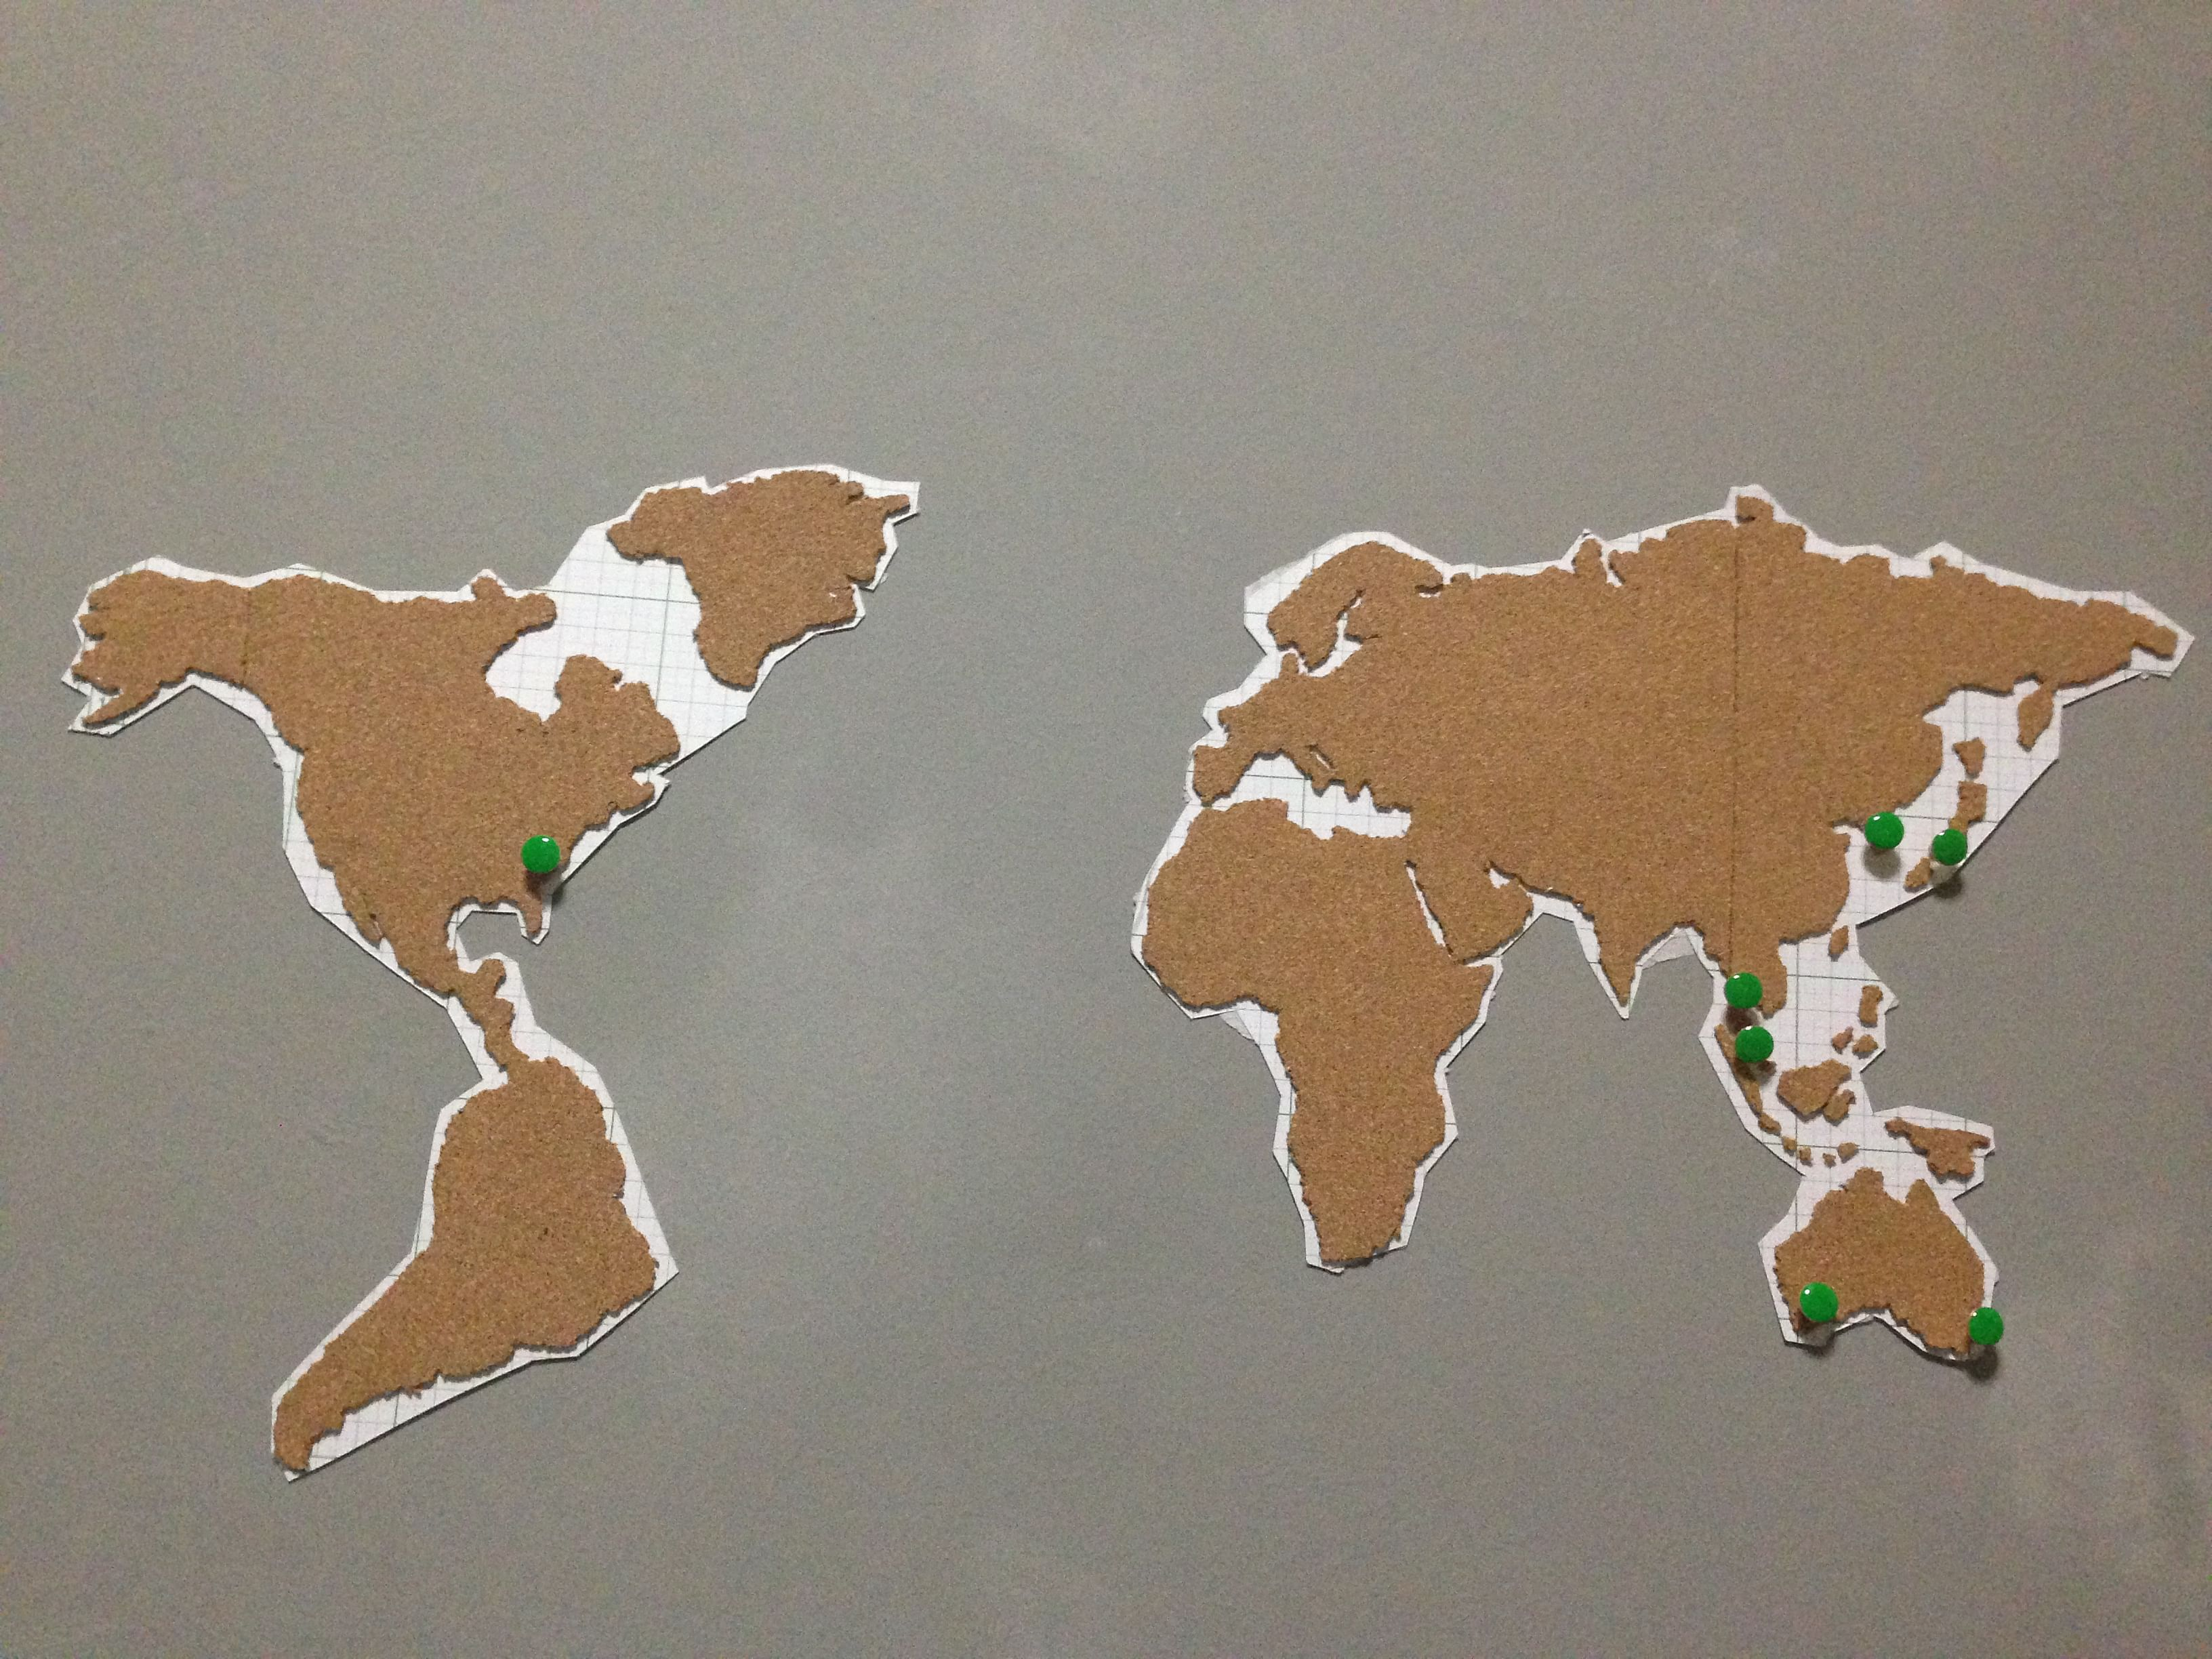 Diy corkboard world map home decor singapore diy corkboard world map gumiabroncs Choice Image